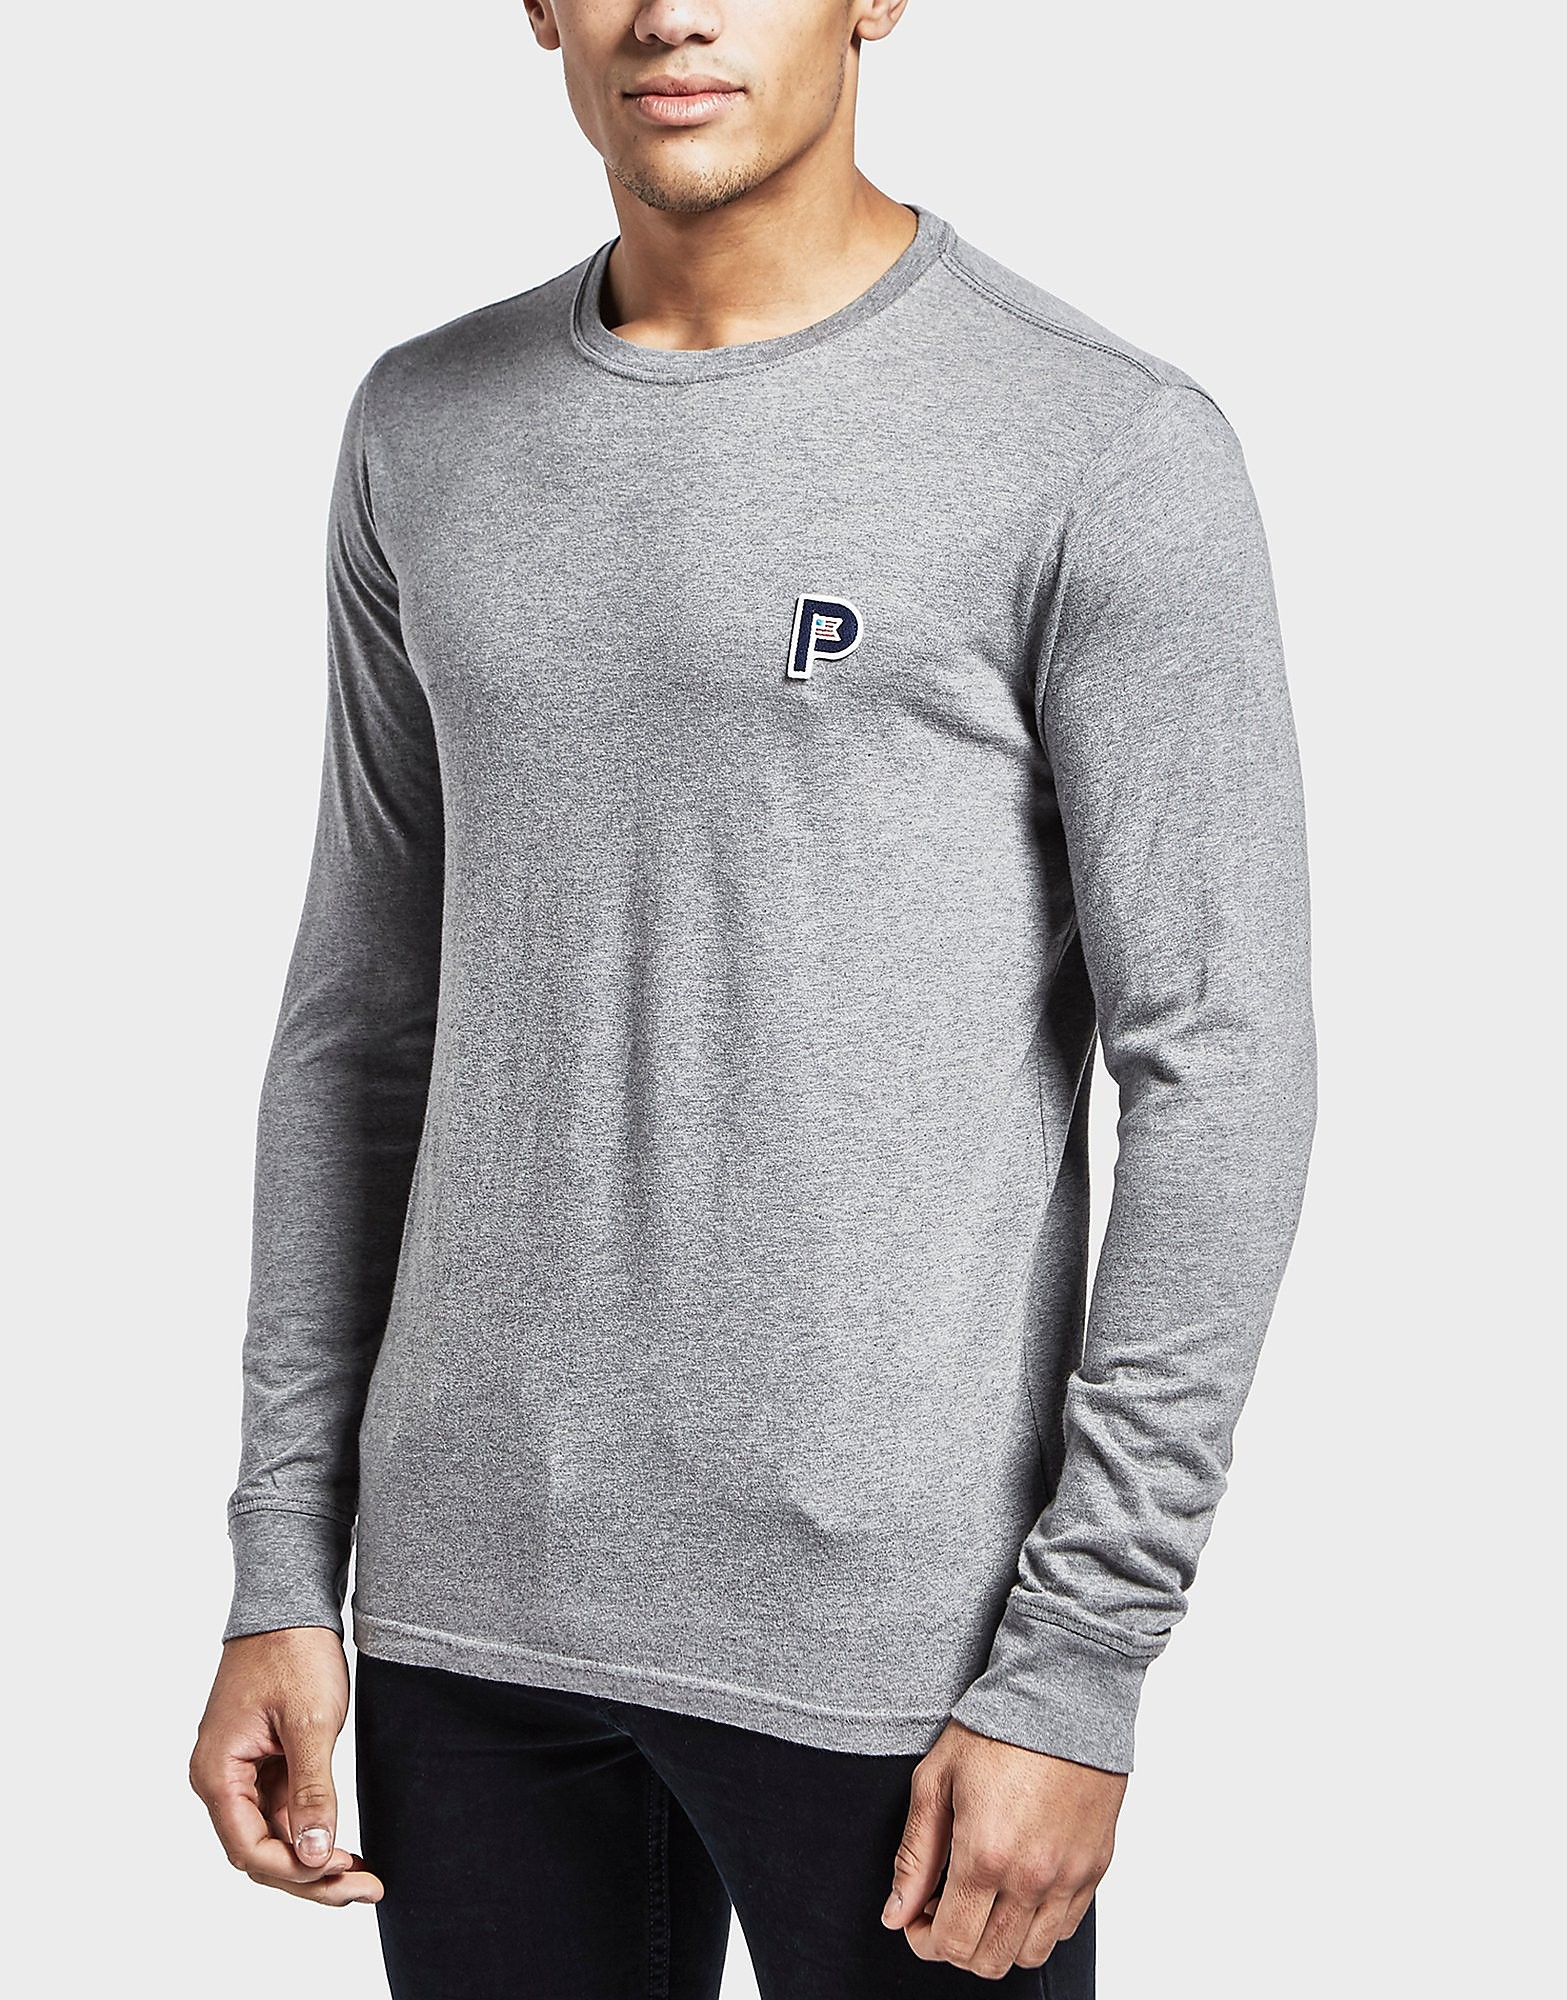 Penfield Plano Long Sleeve T-Shirt